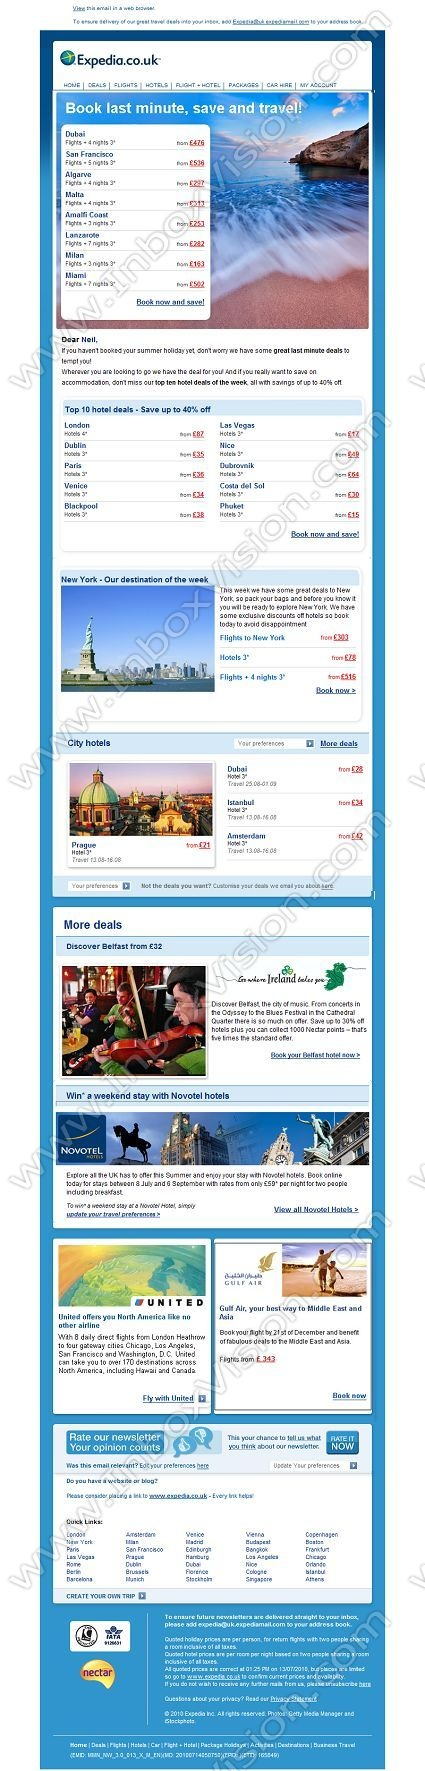 Company:    Expedia.co.uk    Subject:    Last minute summer holidays! Book today and save             INBOXVISION is a global database and email gallery of 1.5 million B2C and B2B promotional emails and newsletter templates, providing email design ideas and email marketing intelligence http://www.inboxvision.com/blog